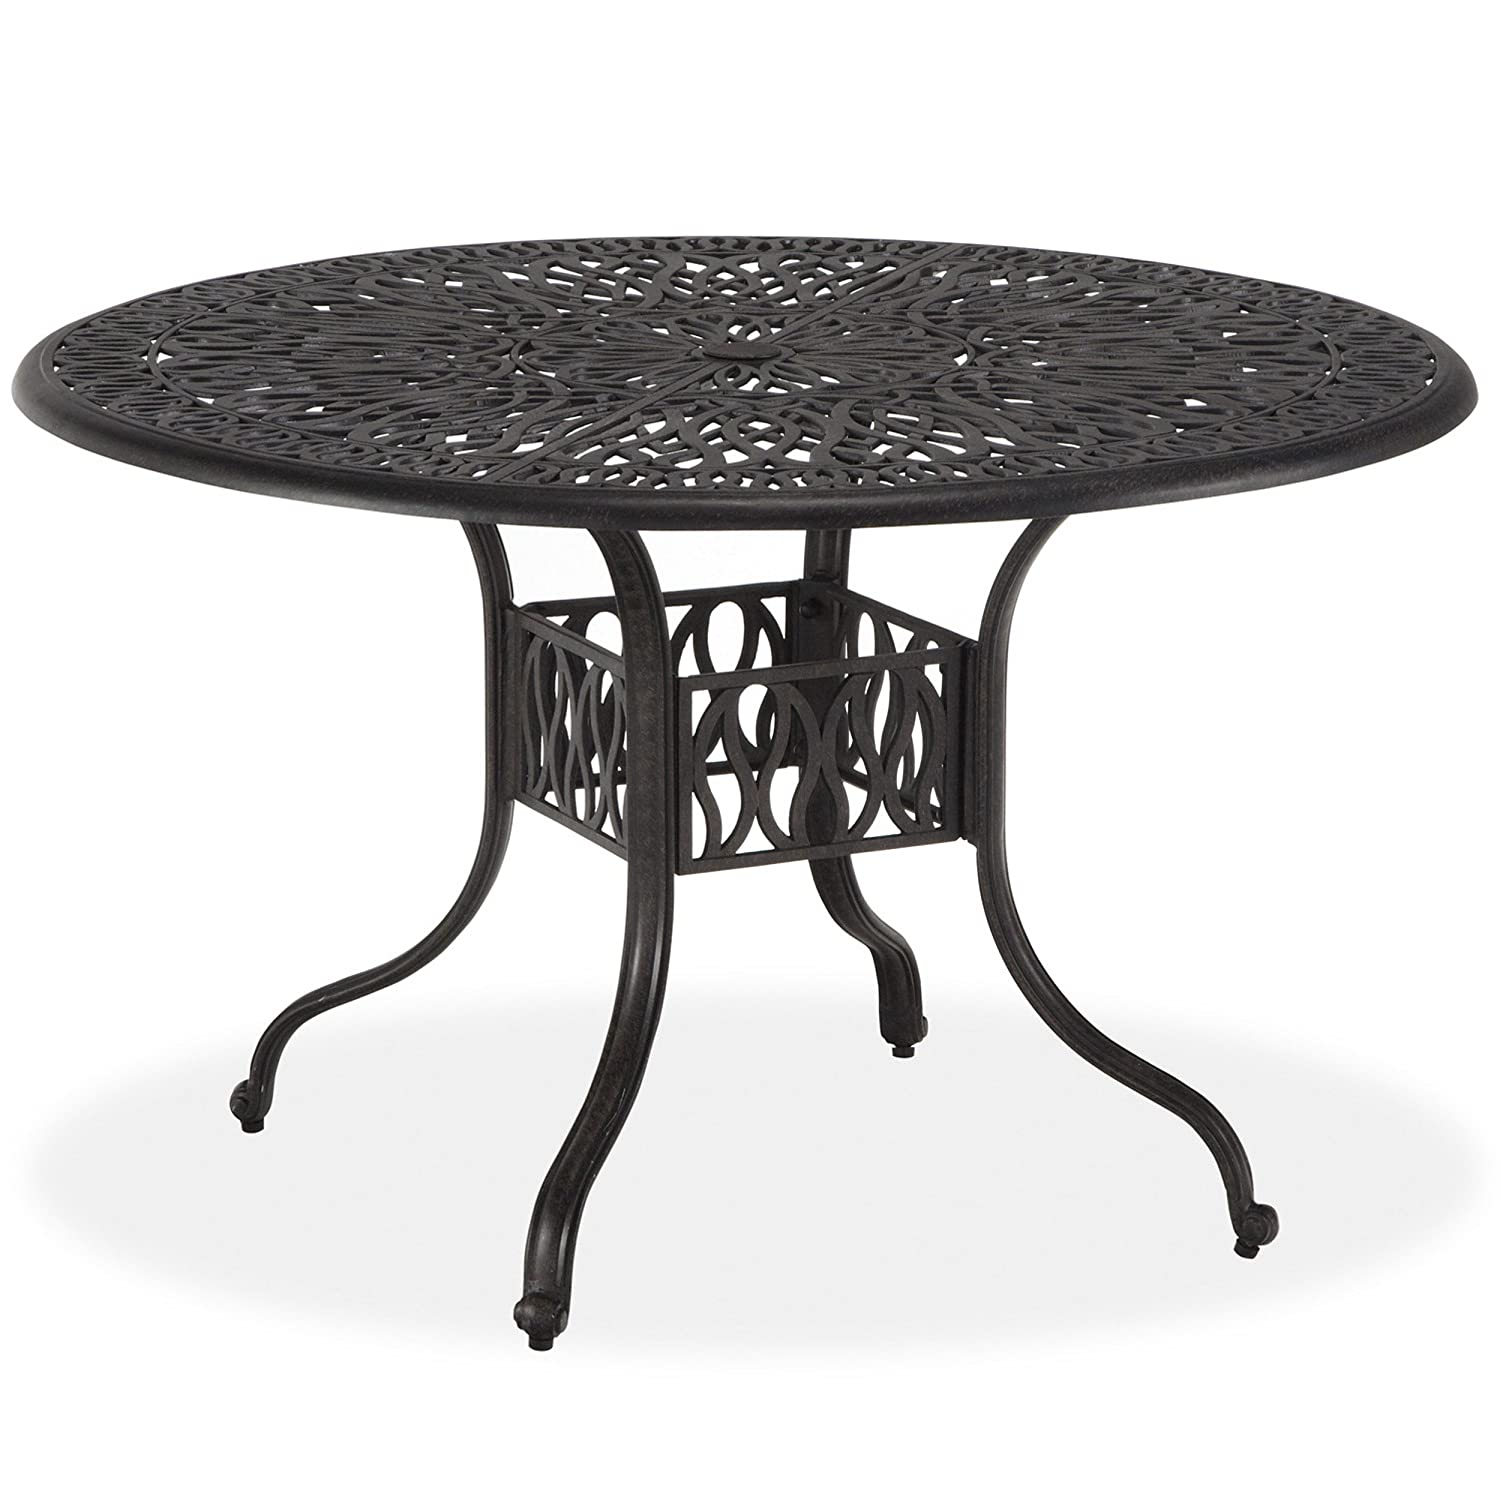 Amazoncom Home Styles Floral Blossom Round Dining Table Inch - White metal outdoor dining table